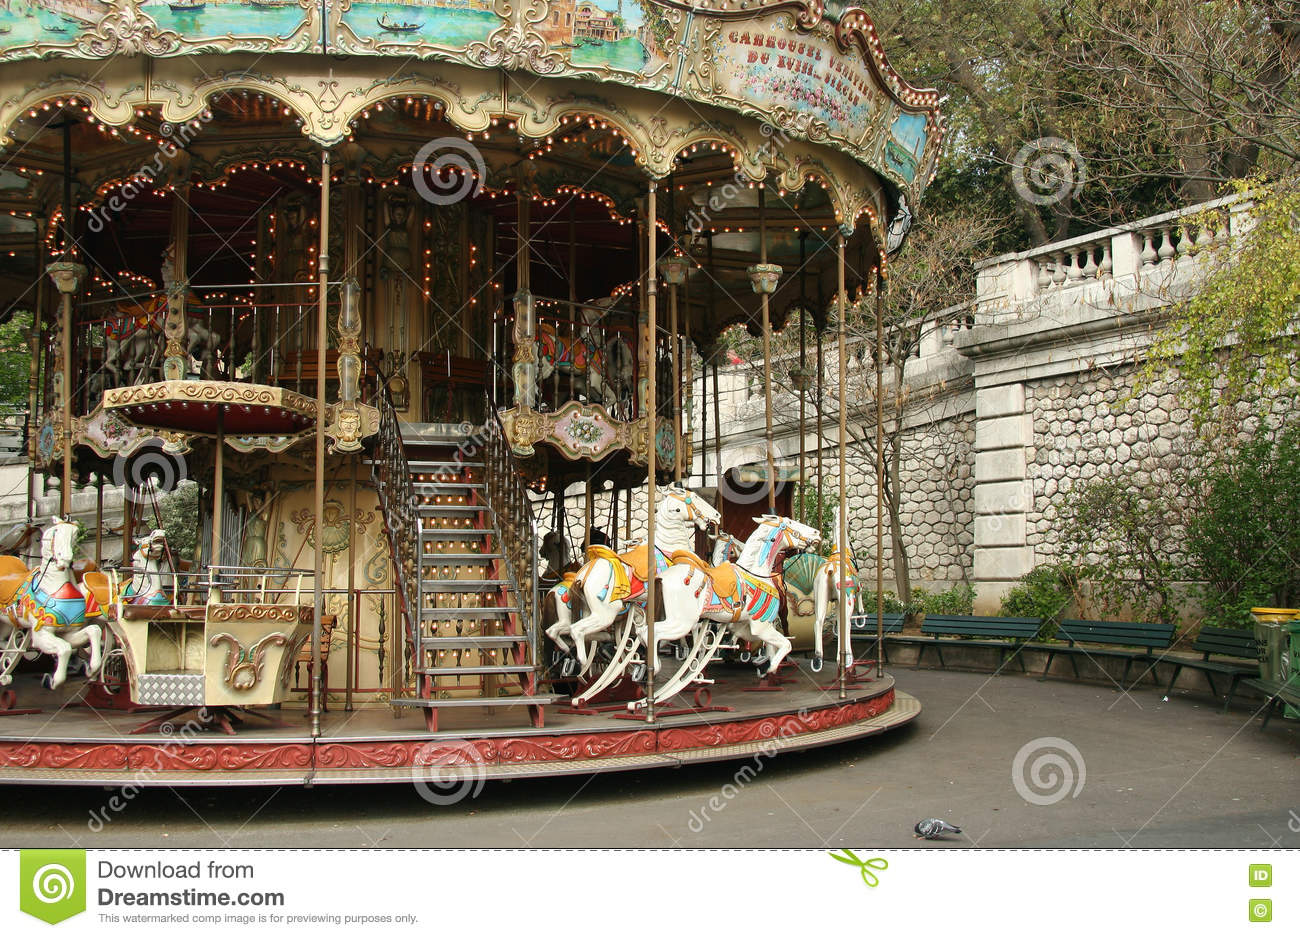 Karussell Kaufen French Old Carousel With Horses Stock Image Image Of Culture